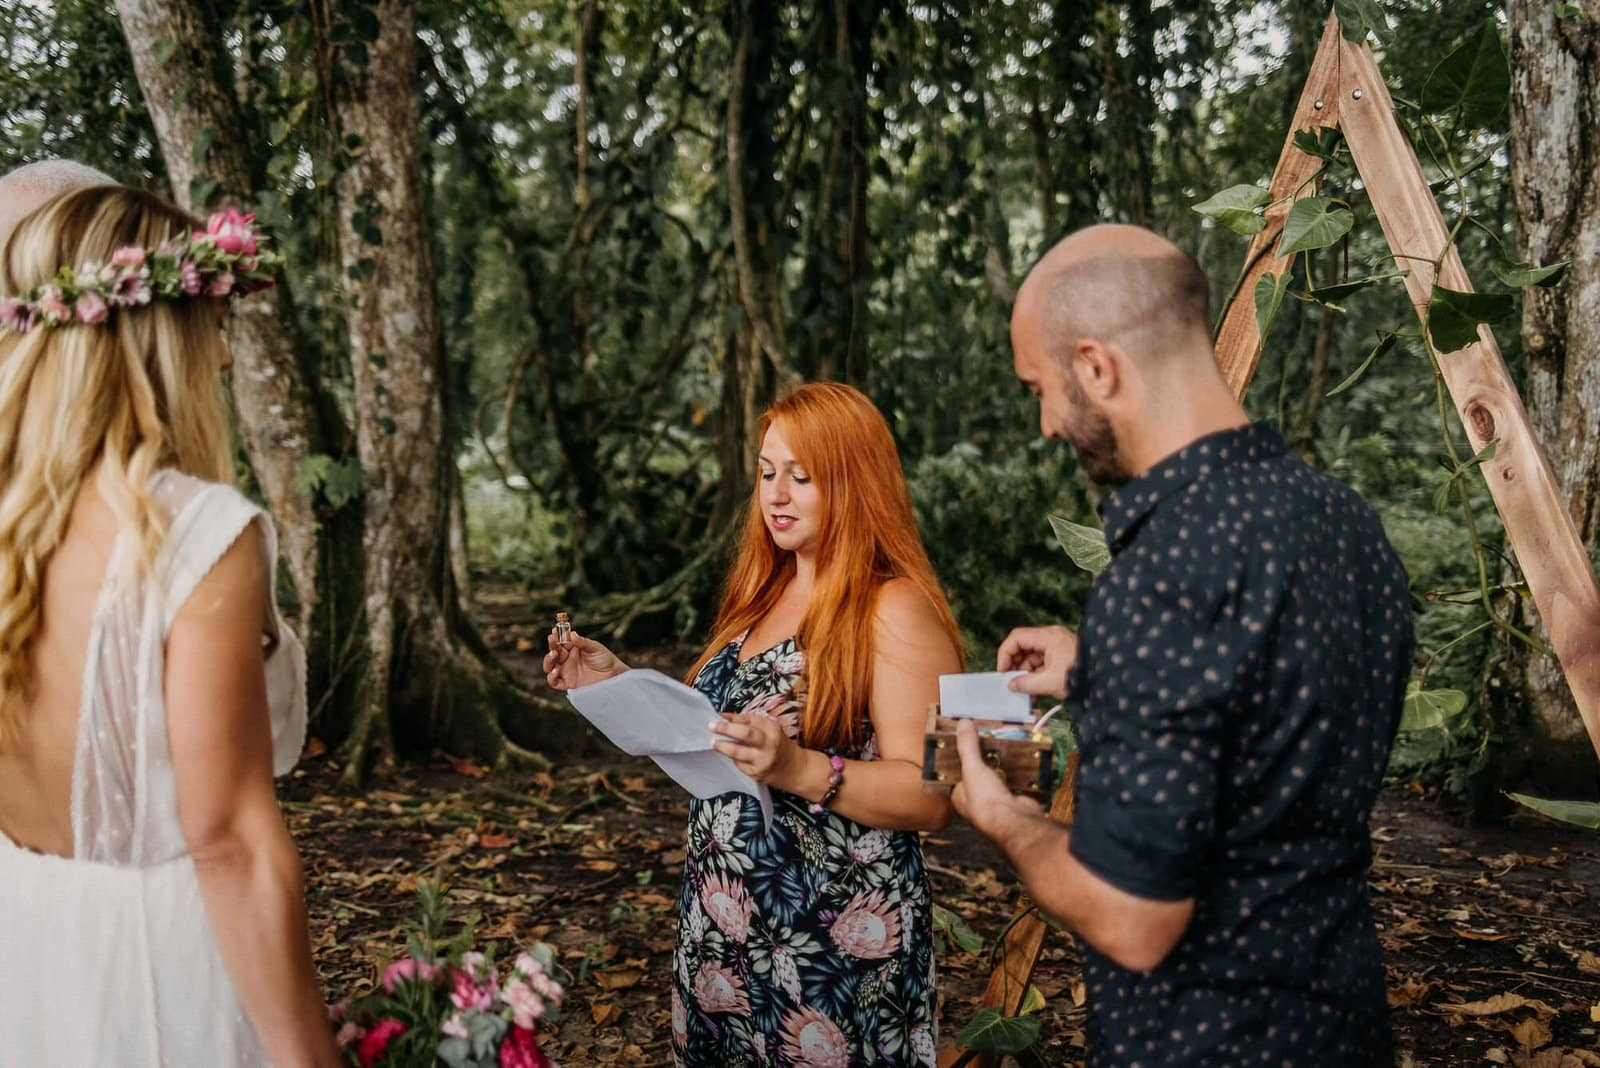 officiant marries couple in Costa Rica.